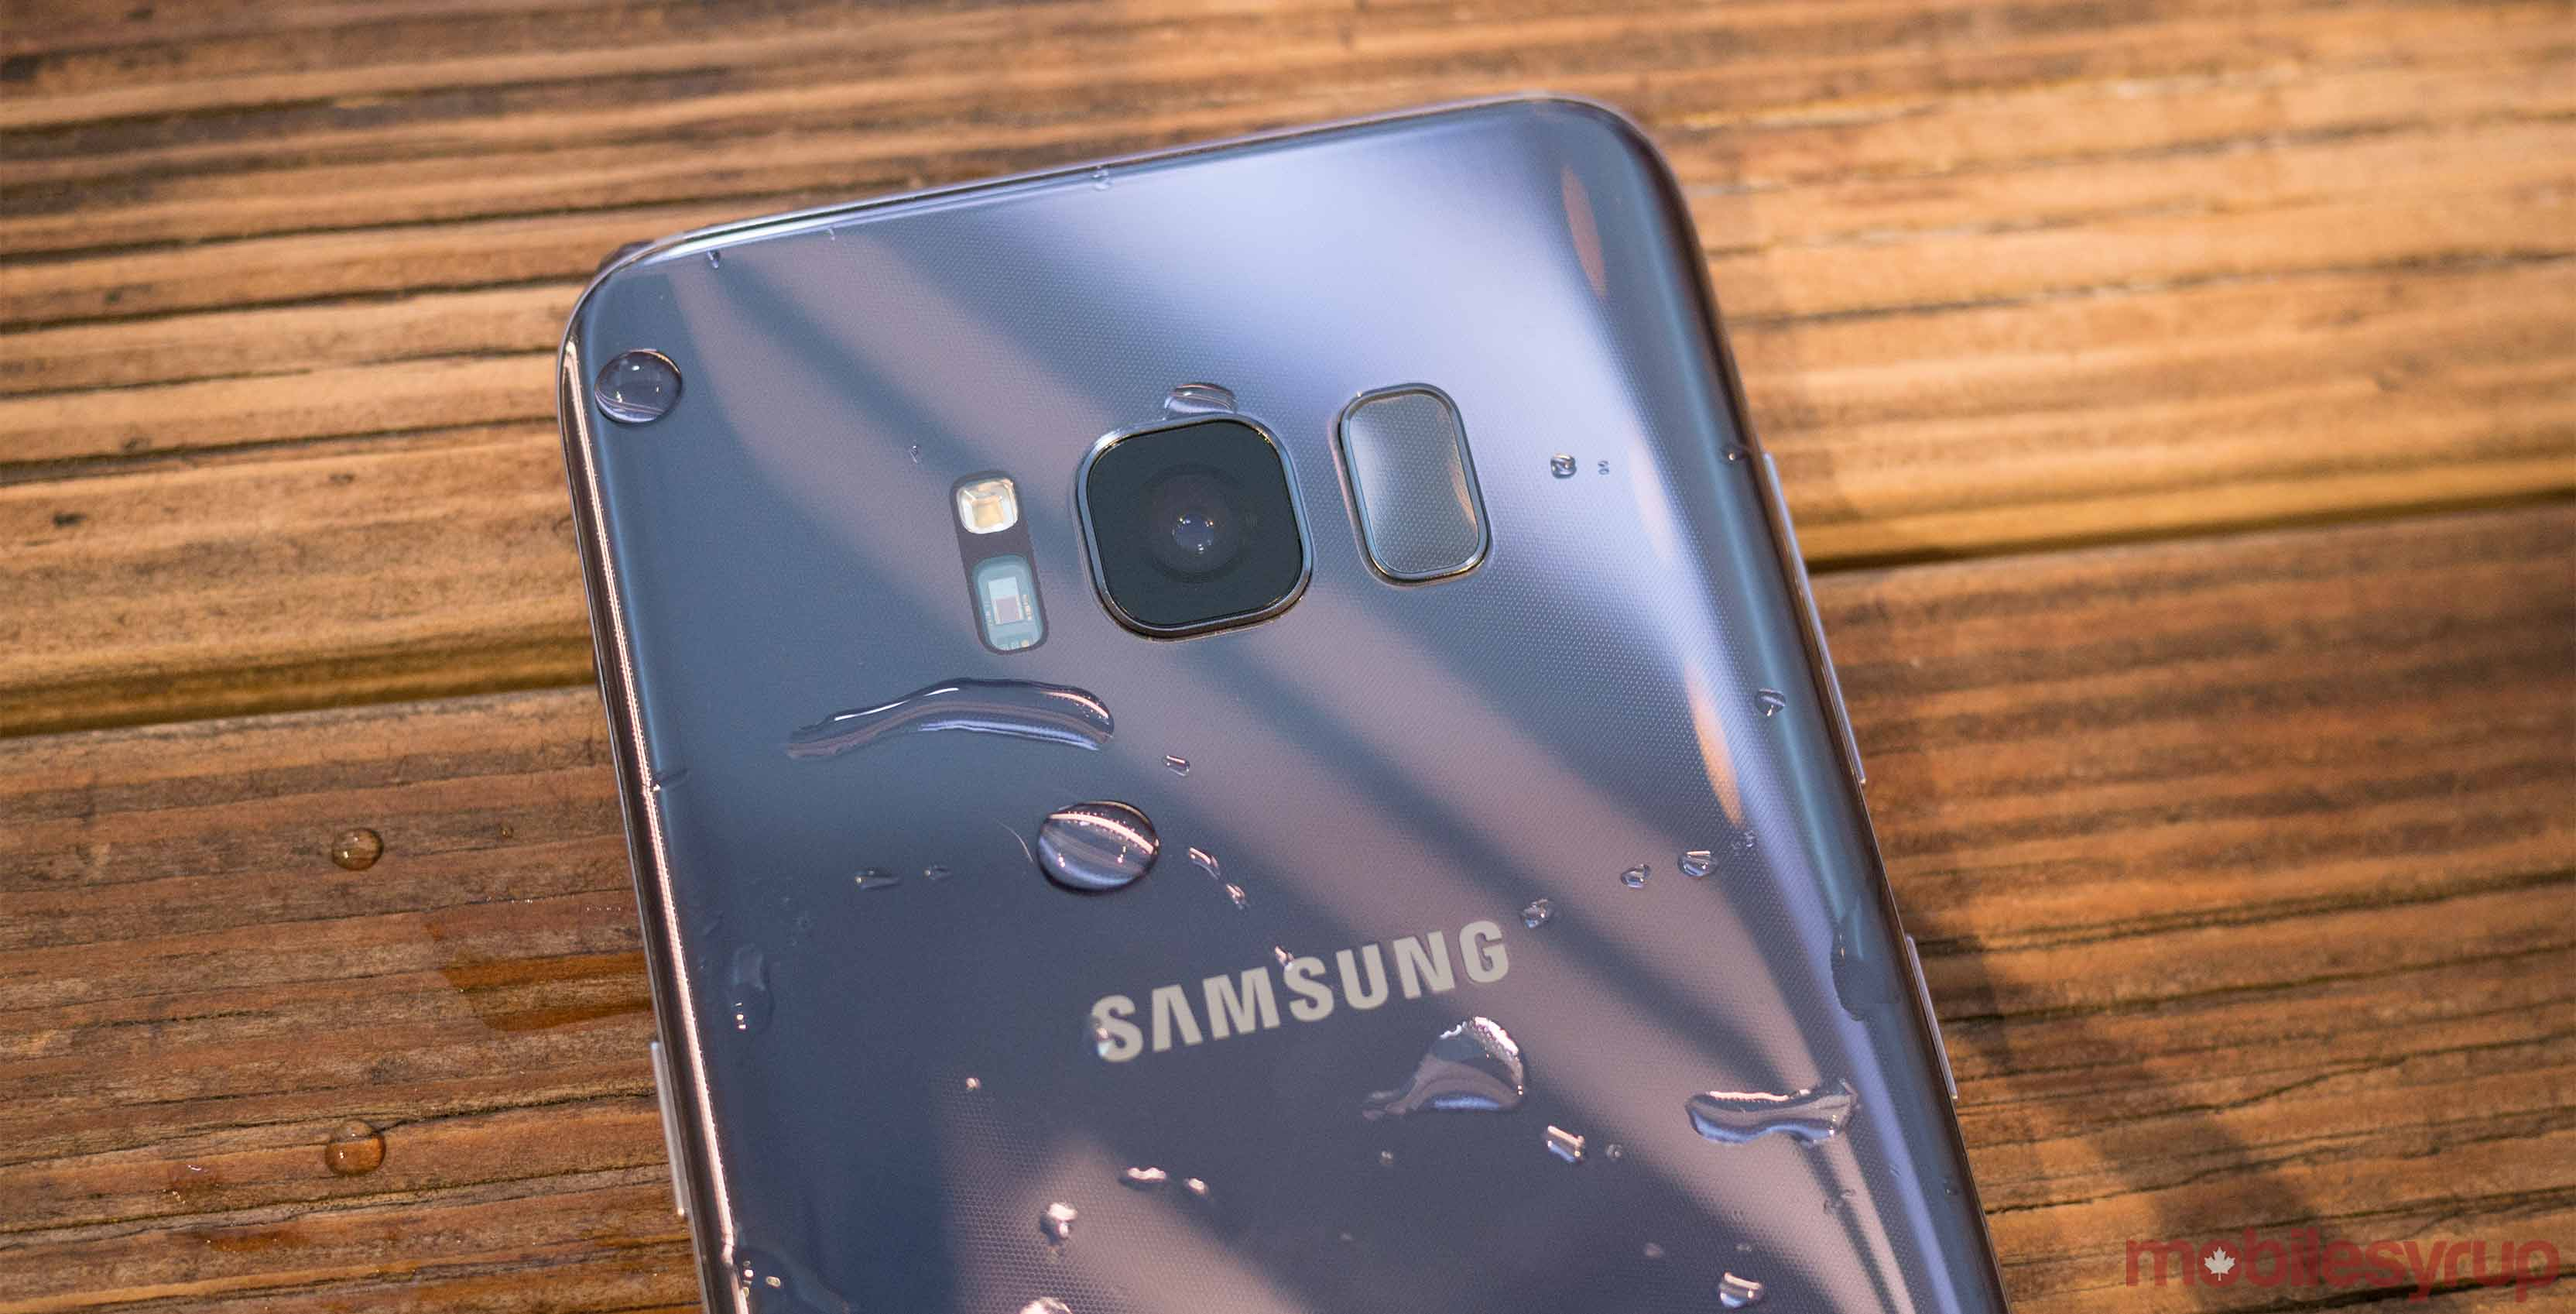 Samsung Galaxy S8+ production